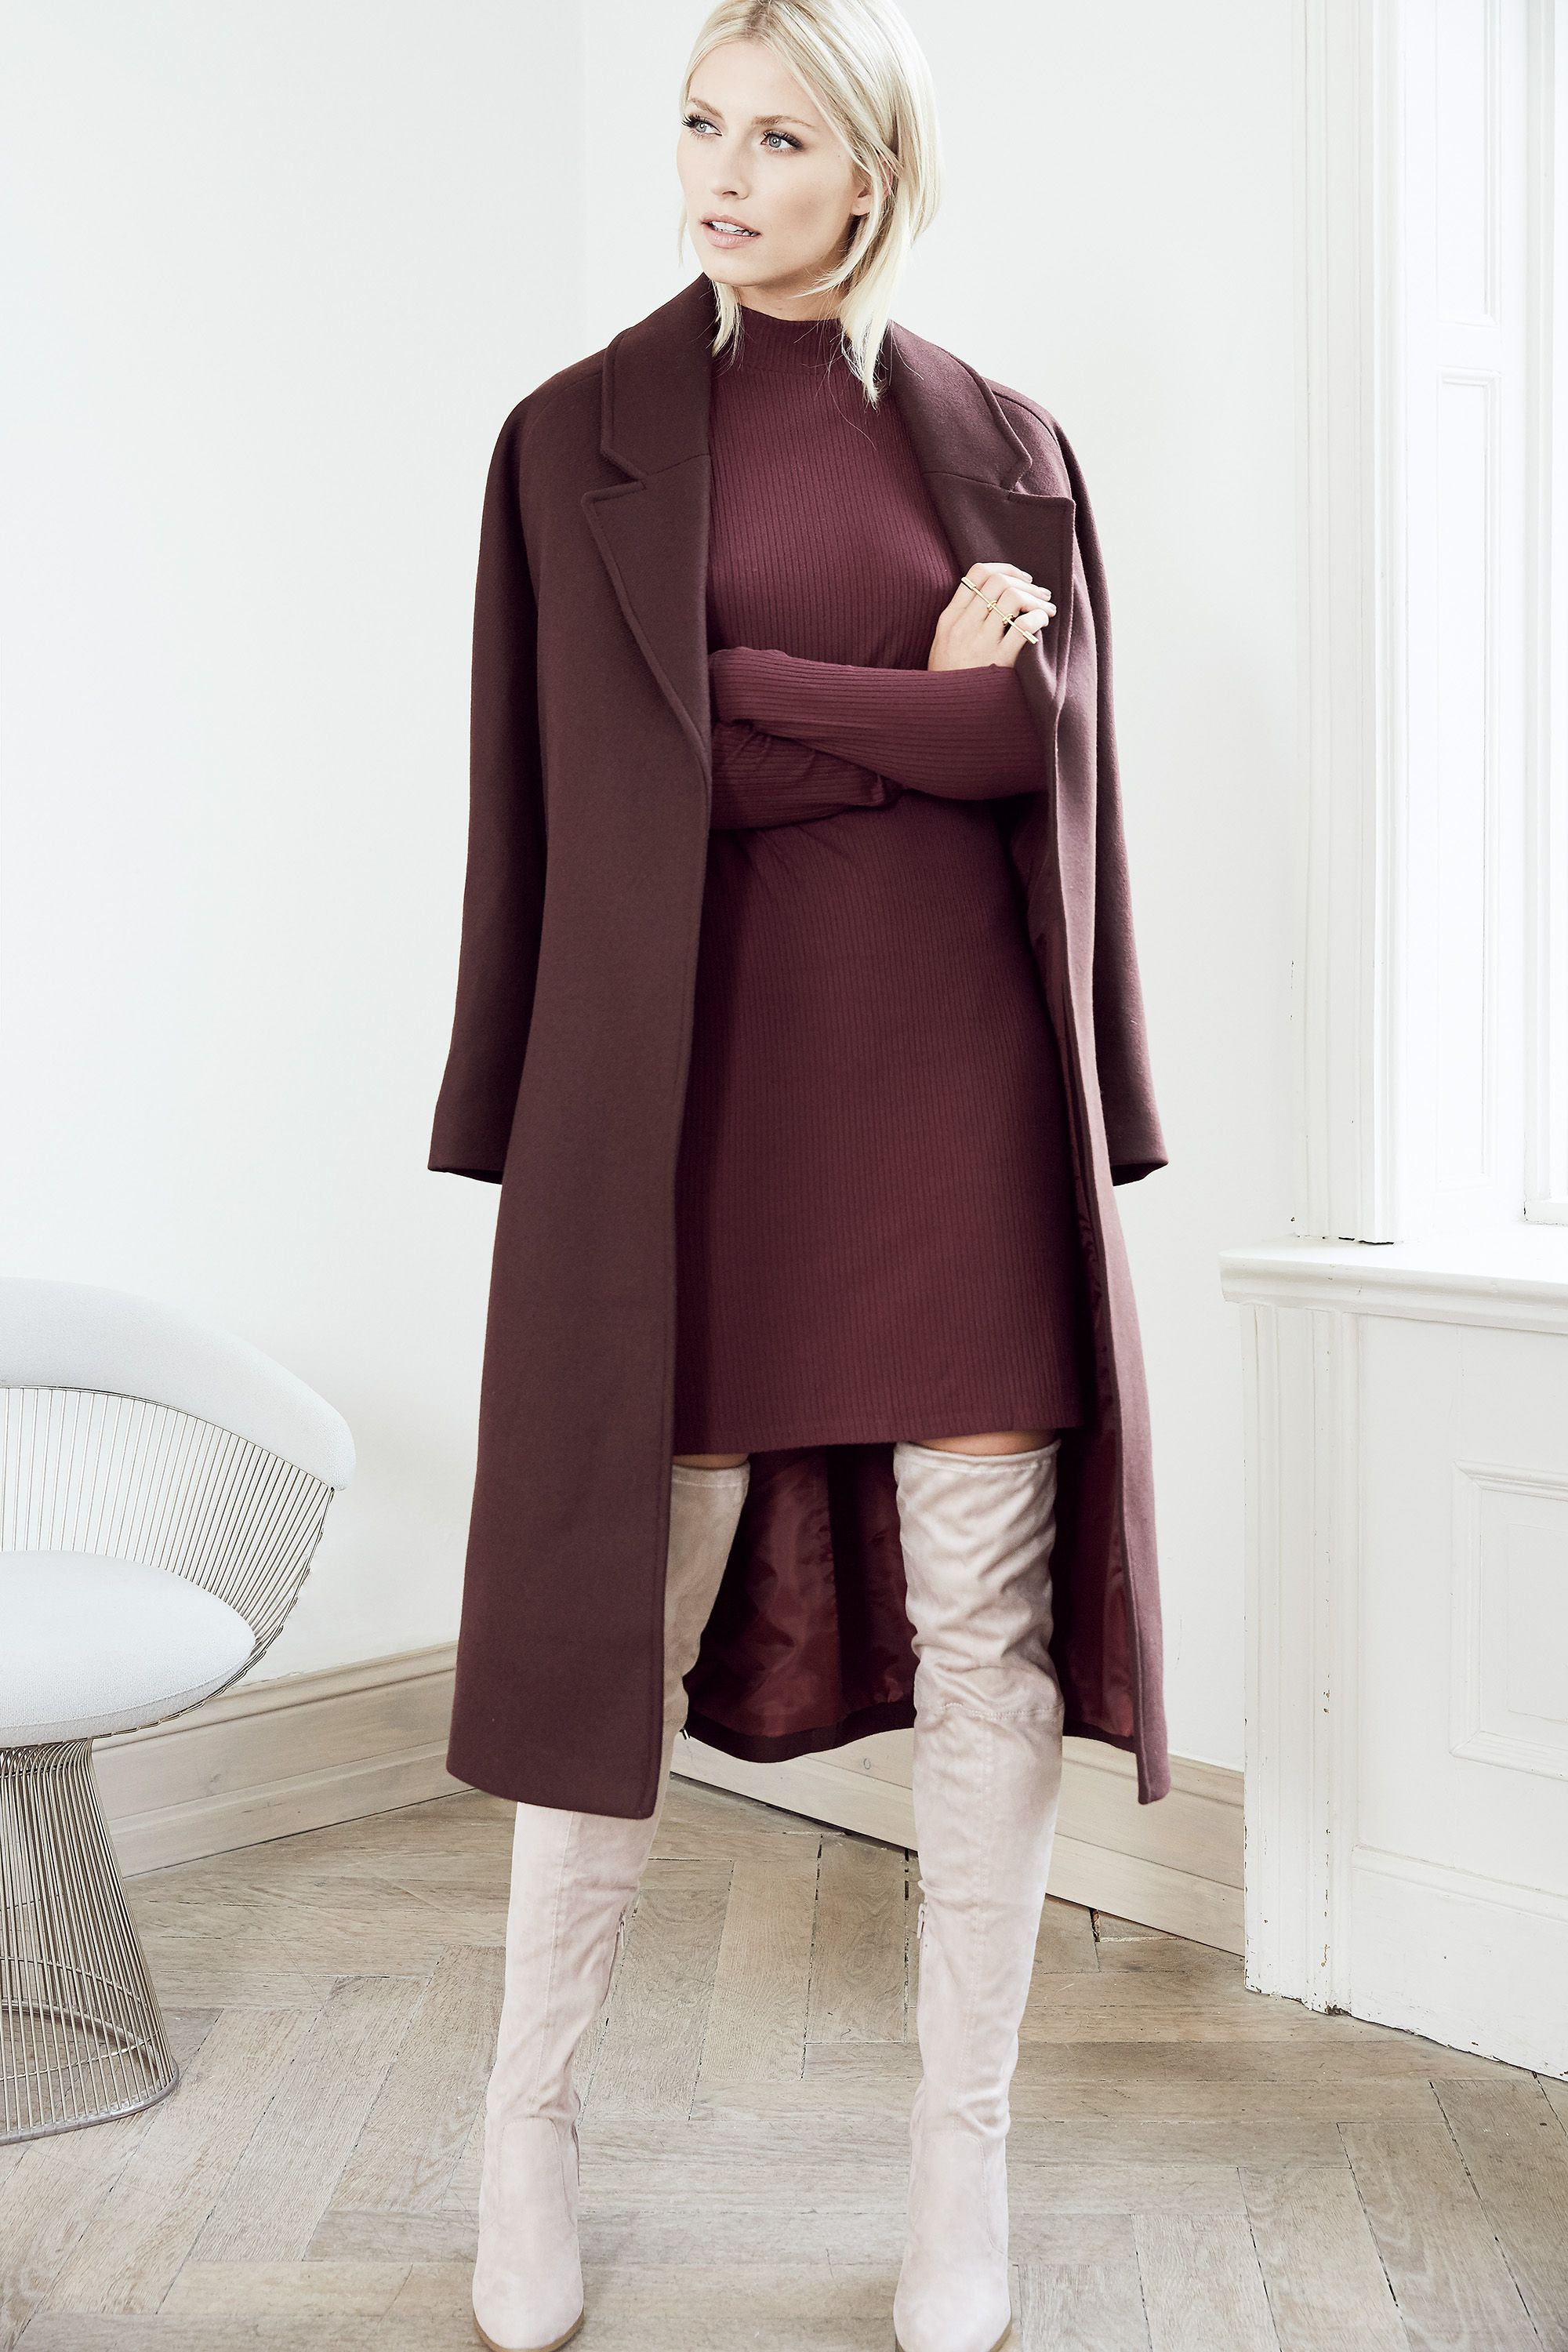 aboutyoude idol lena gercke in ihrem warm bordeaux outfit mit, Hause ideen